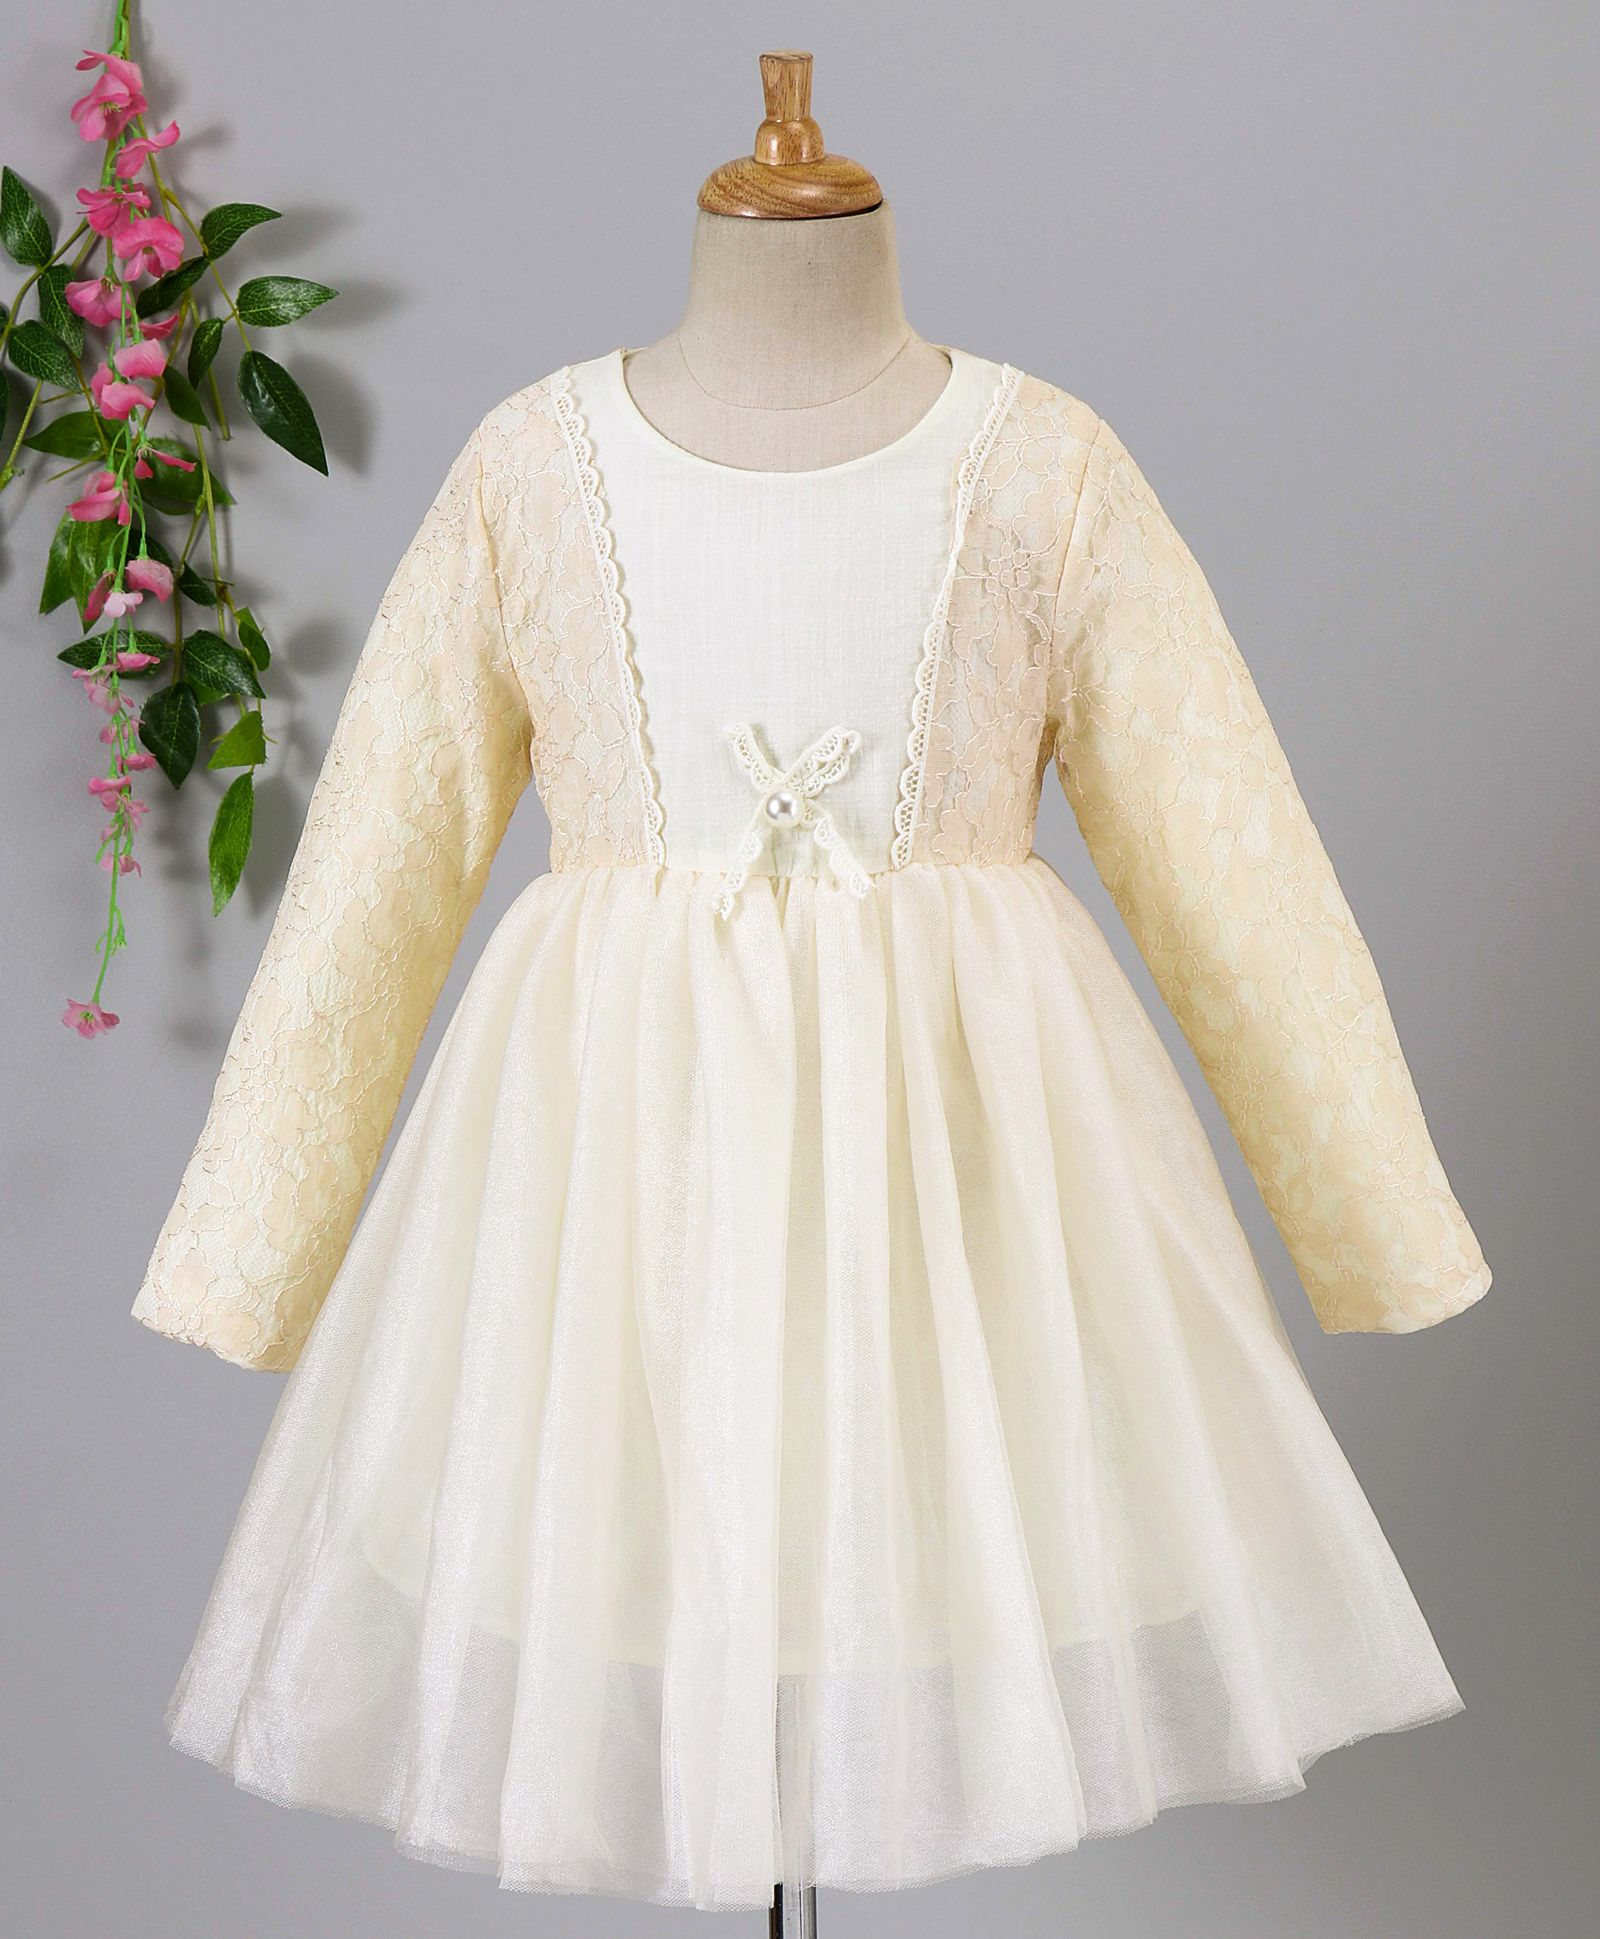 05605f8958c39 Buy Fen Cai Flower Design Full Sleeves Net Dress Cream for Girls (0-6  Months) Online in India, Shop at FirstCry.com - 2344290